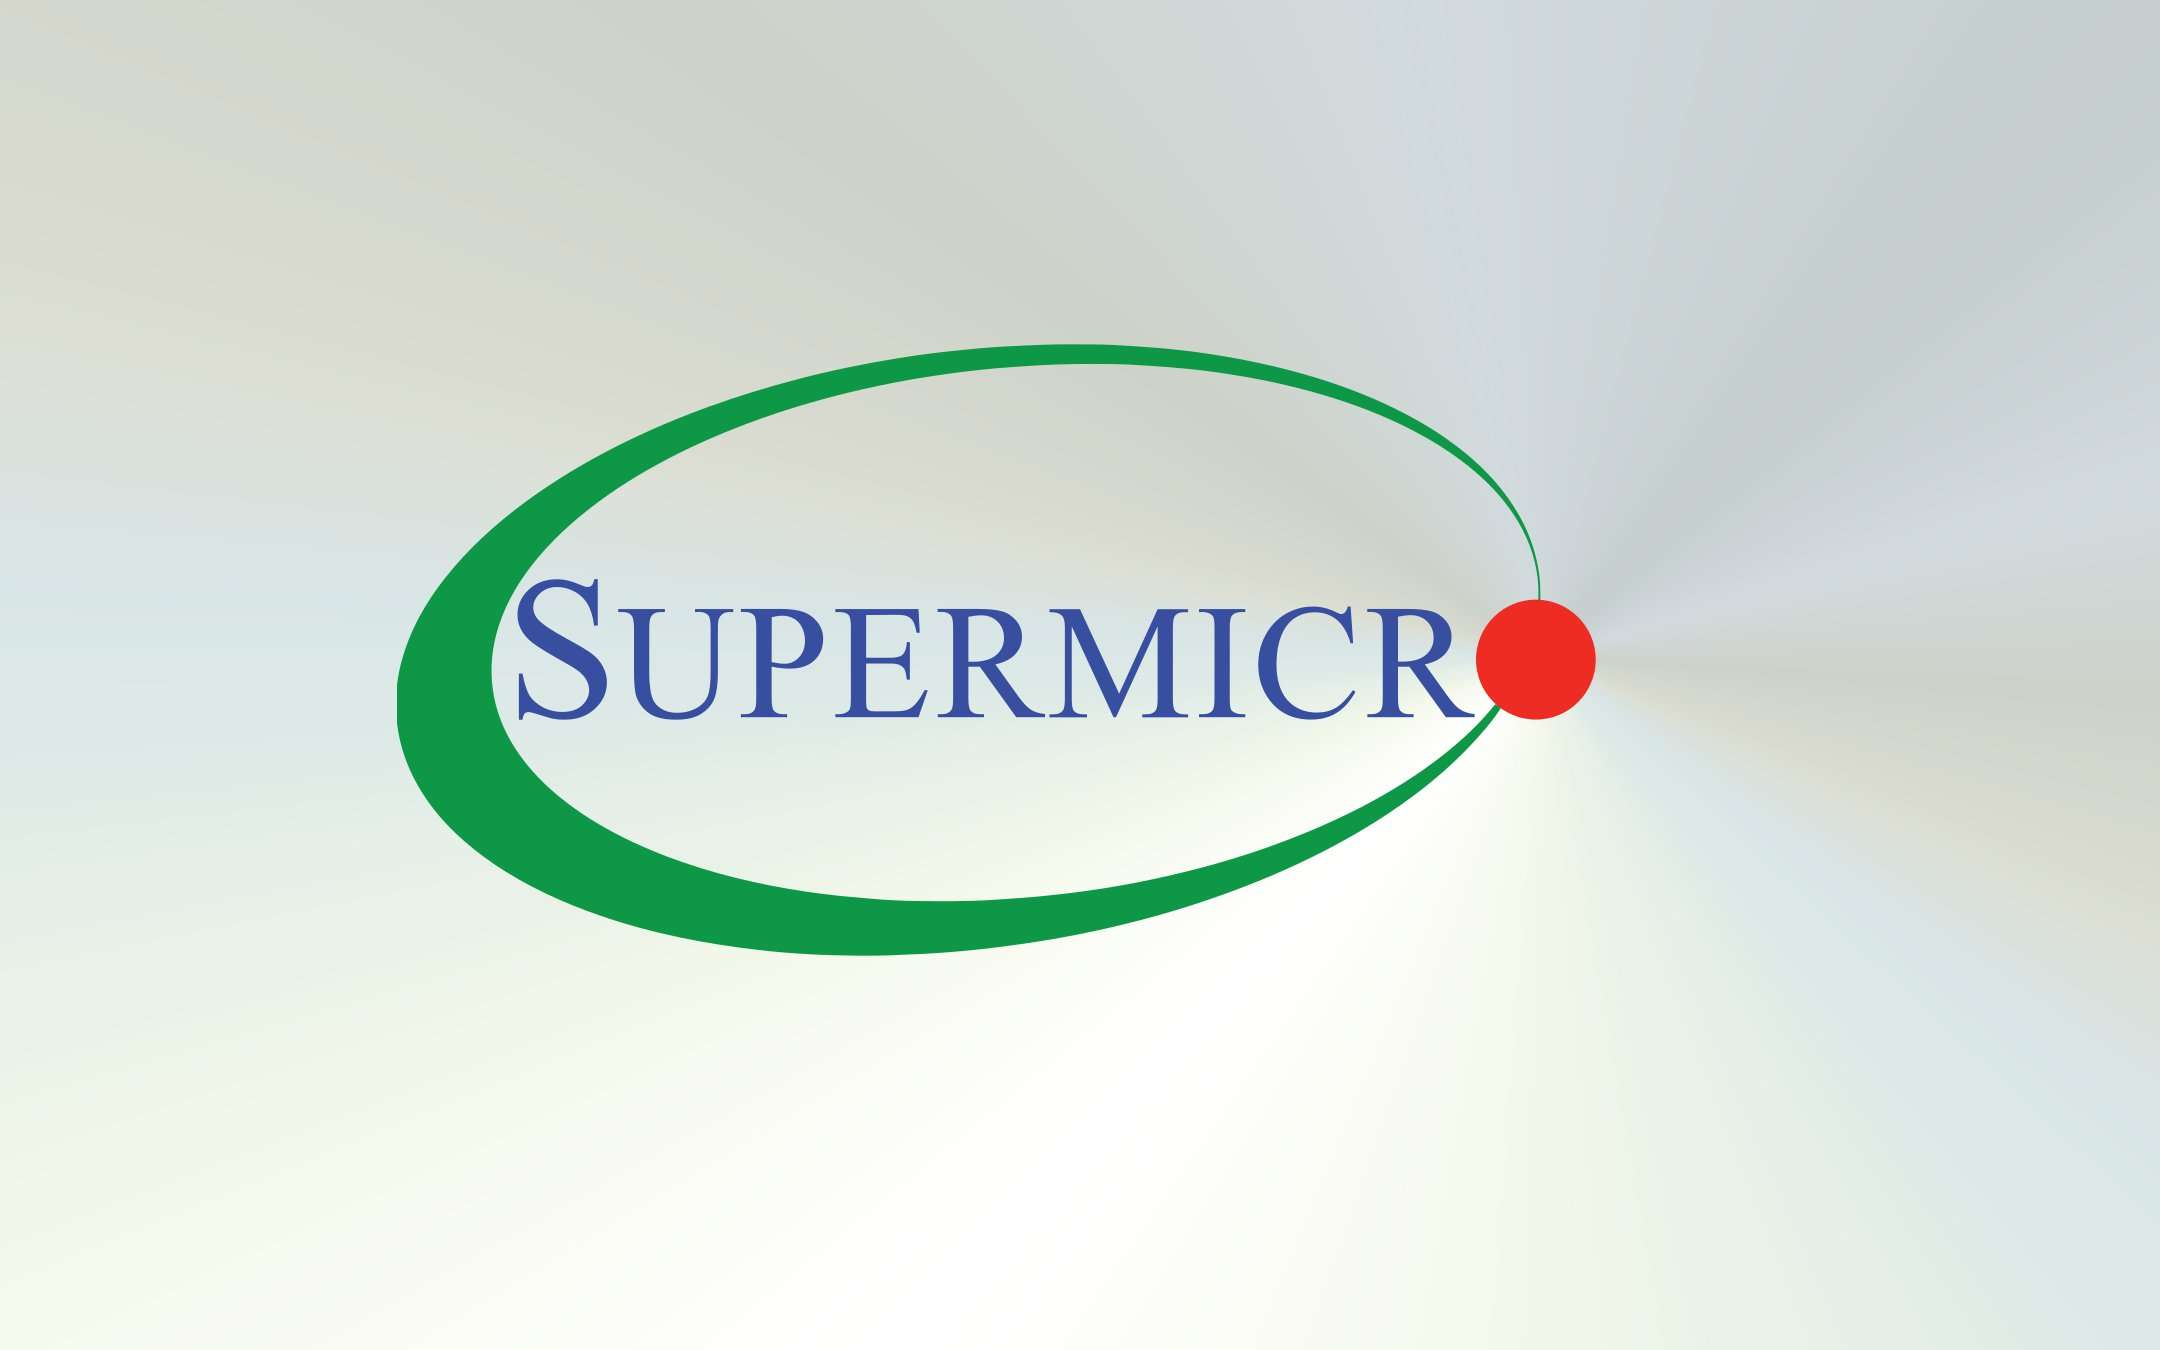 Supermicro, that too many chip talks to China